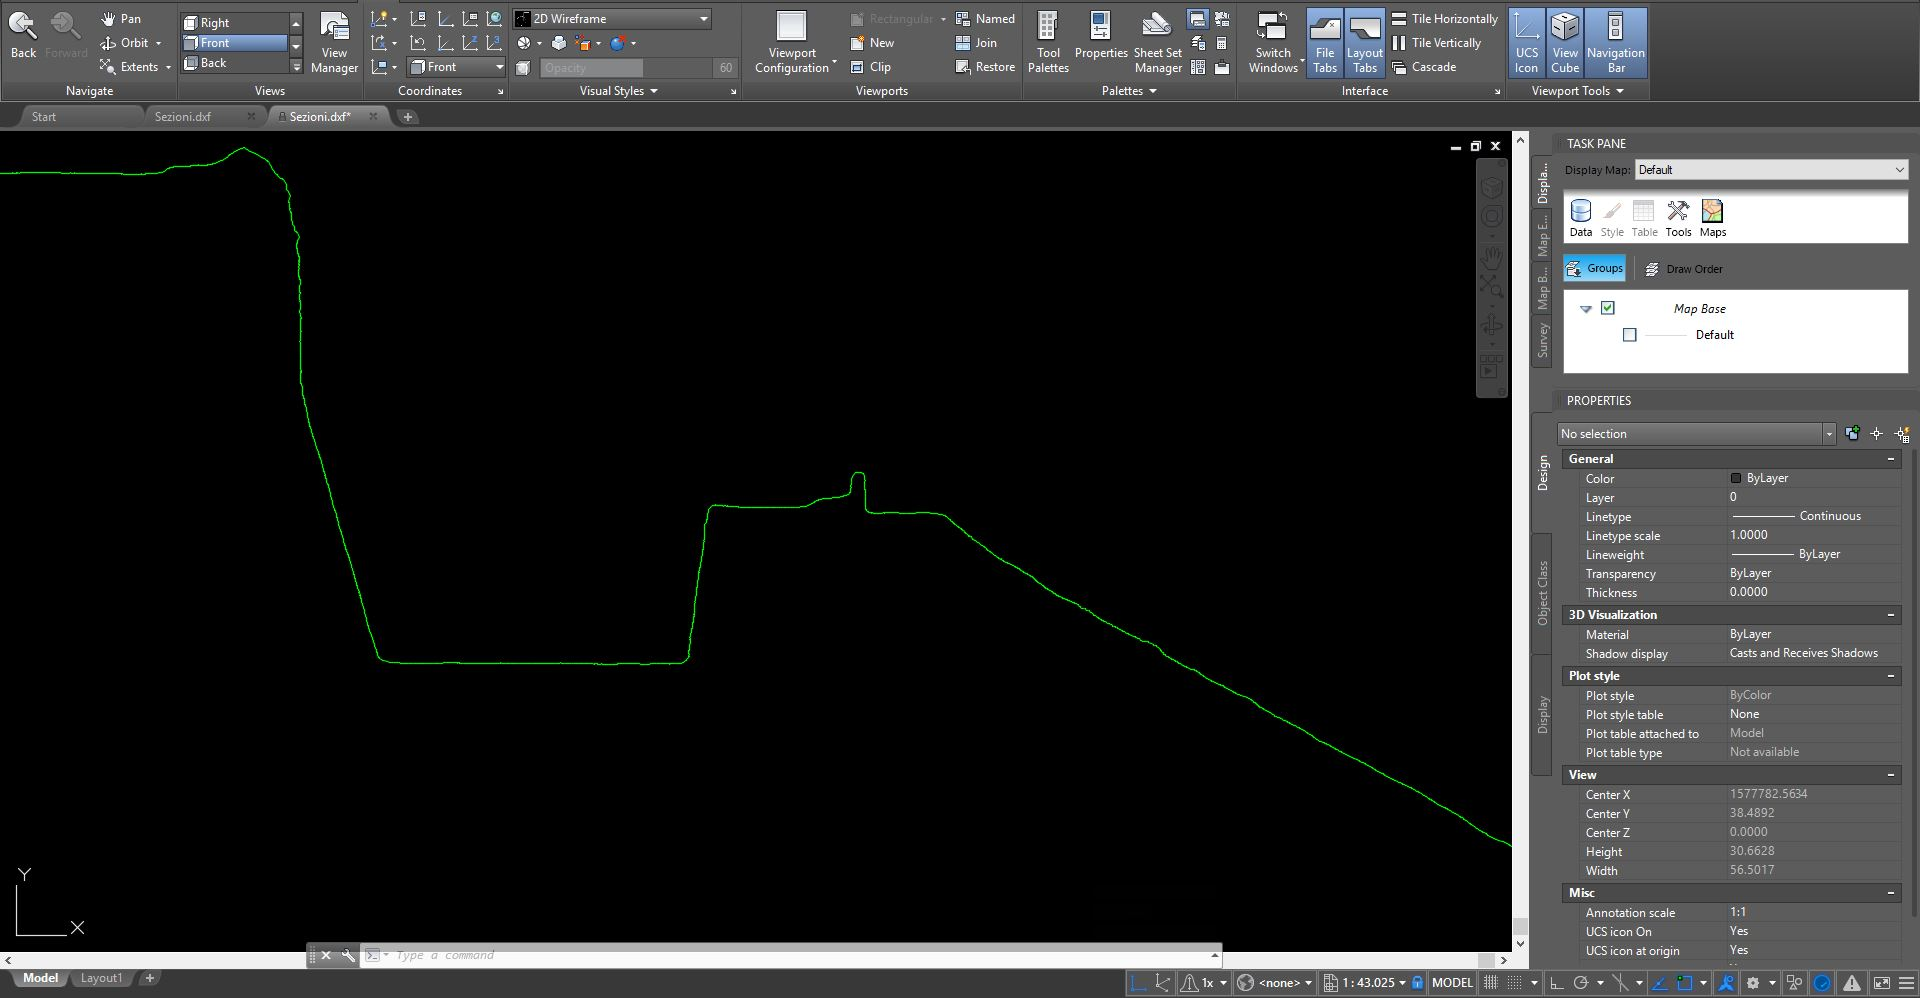 Screenshot di una sezione estratta da Cloud Compare ed importata in Autocad